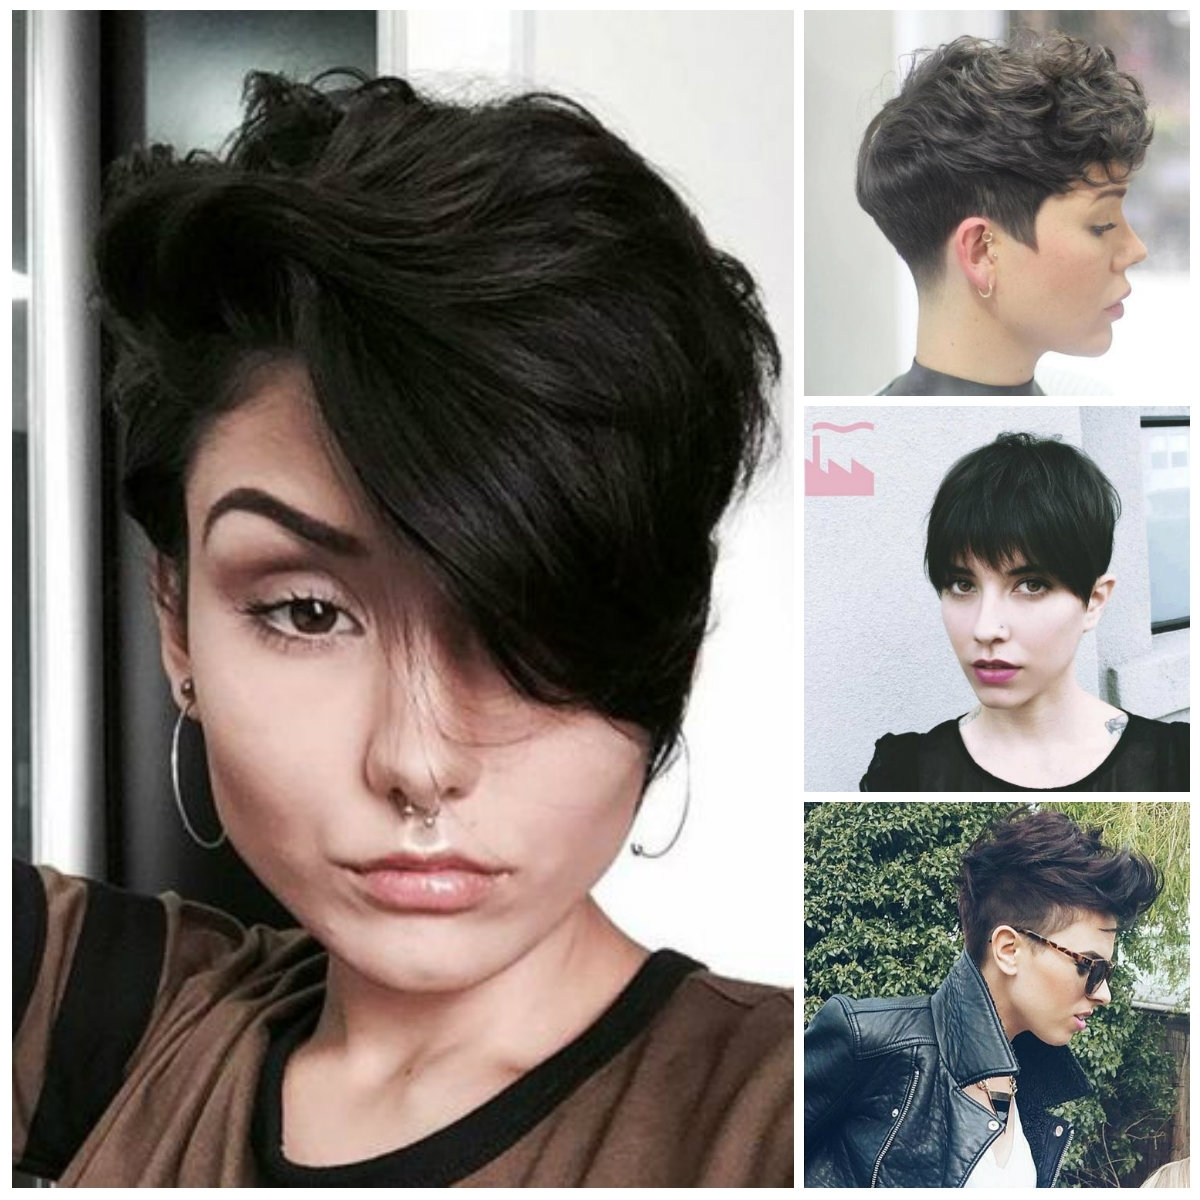 Pixie Haircuts For Thick Hair | 2017 Haircuts, Hairstyles And Hair Within Newest Thick Hair Pixie Hairstyles (View 5 of 15)